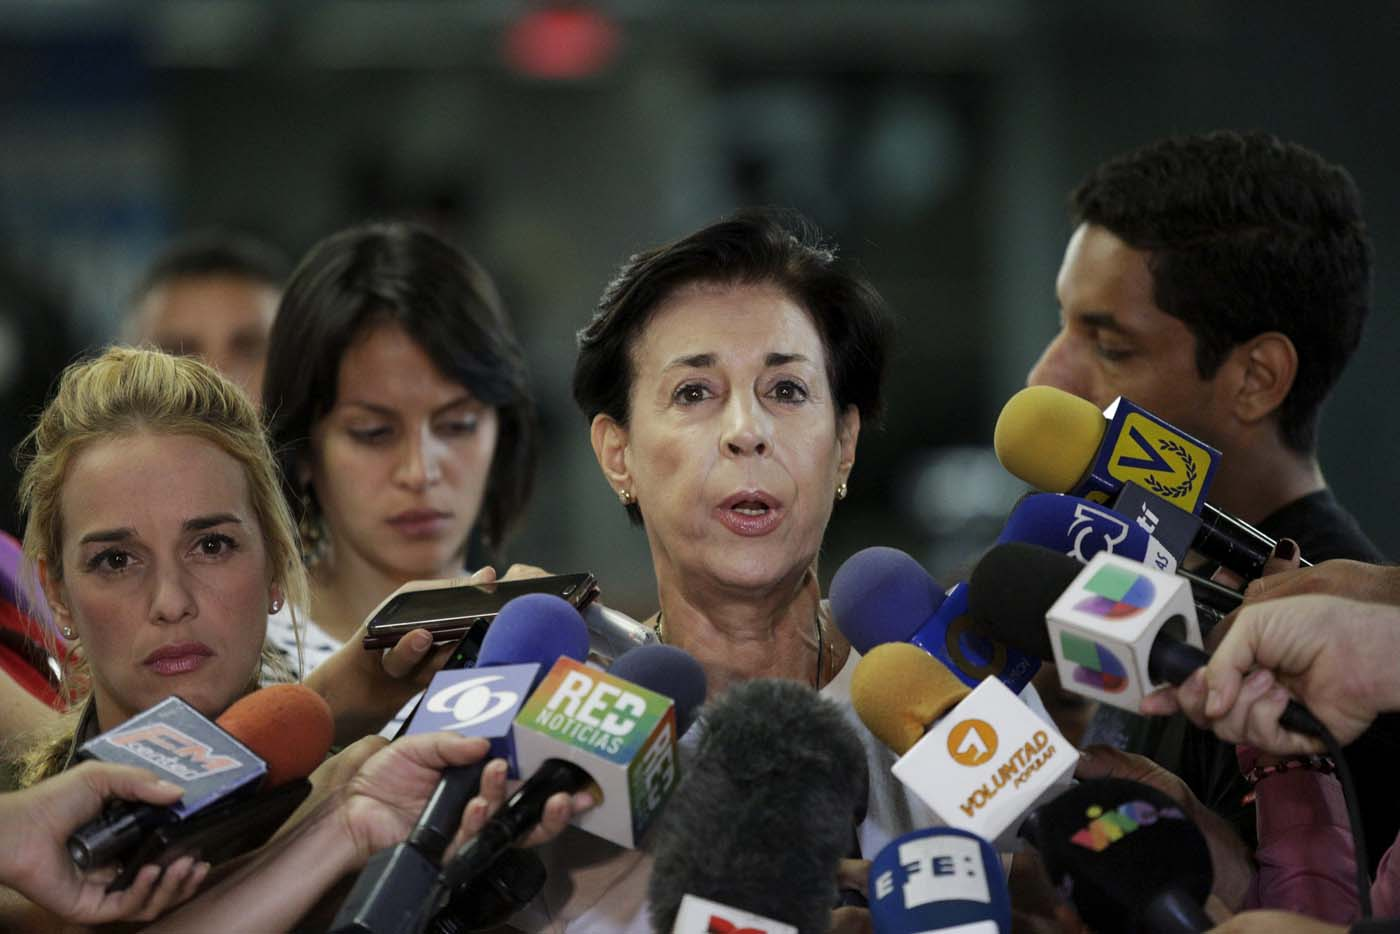 Antonieta Mendoza (C), mother of jailed opposition leader Leopoldo Lopez, addresses the media after lodging a complaint at Venezuela's Prosecutor office, next to Lilian Tintori (L), wife of jailed opposition leader Leopoldo Lopez, in Caracas, January 19, 2016. REUTERS/Marco Bello